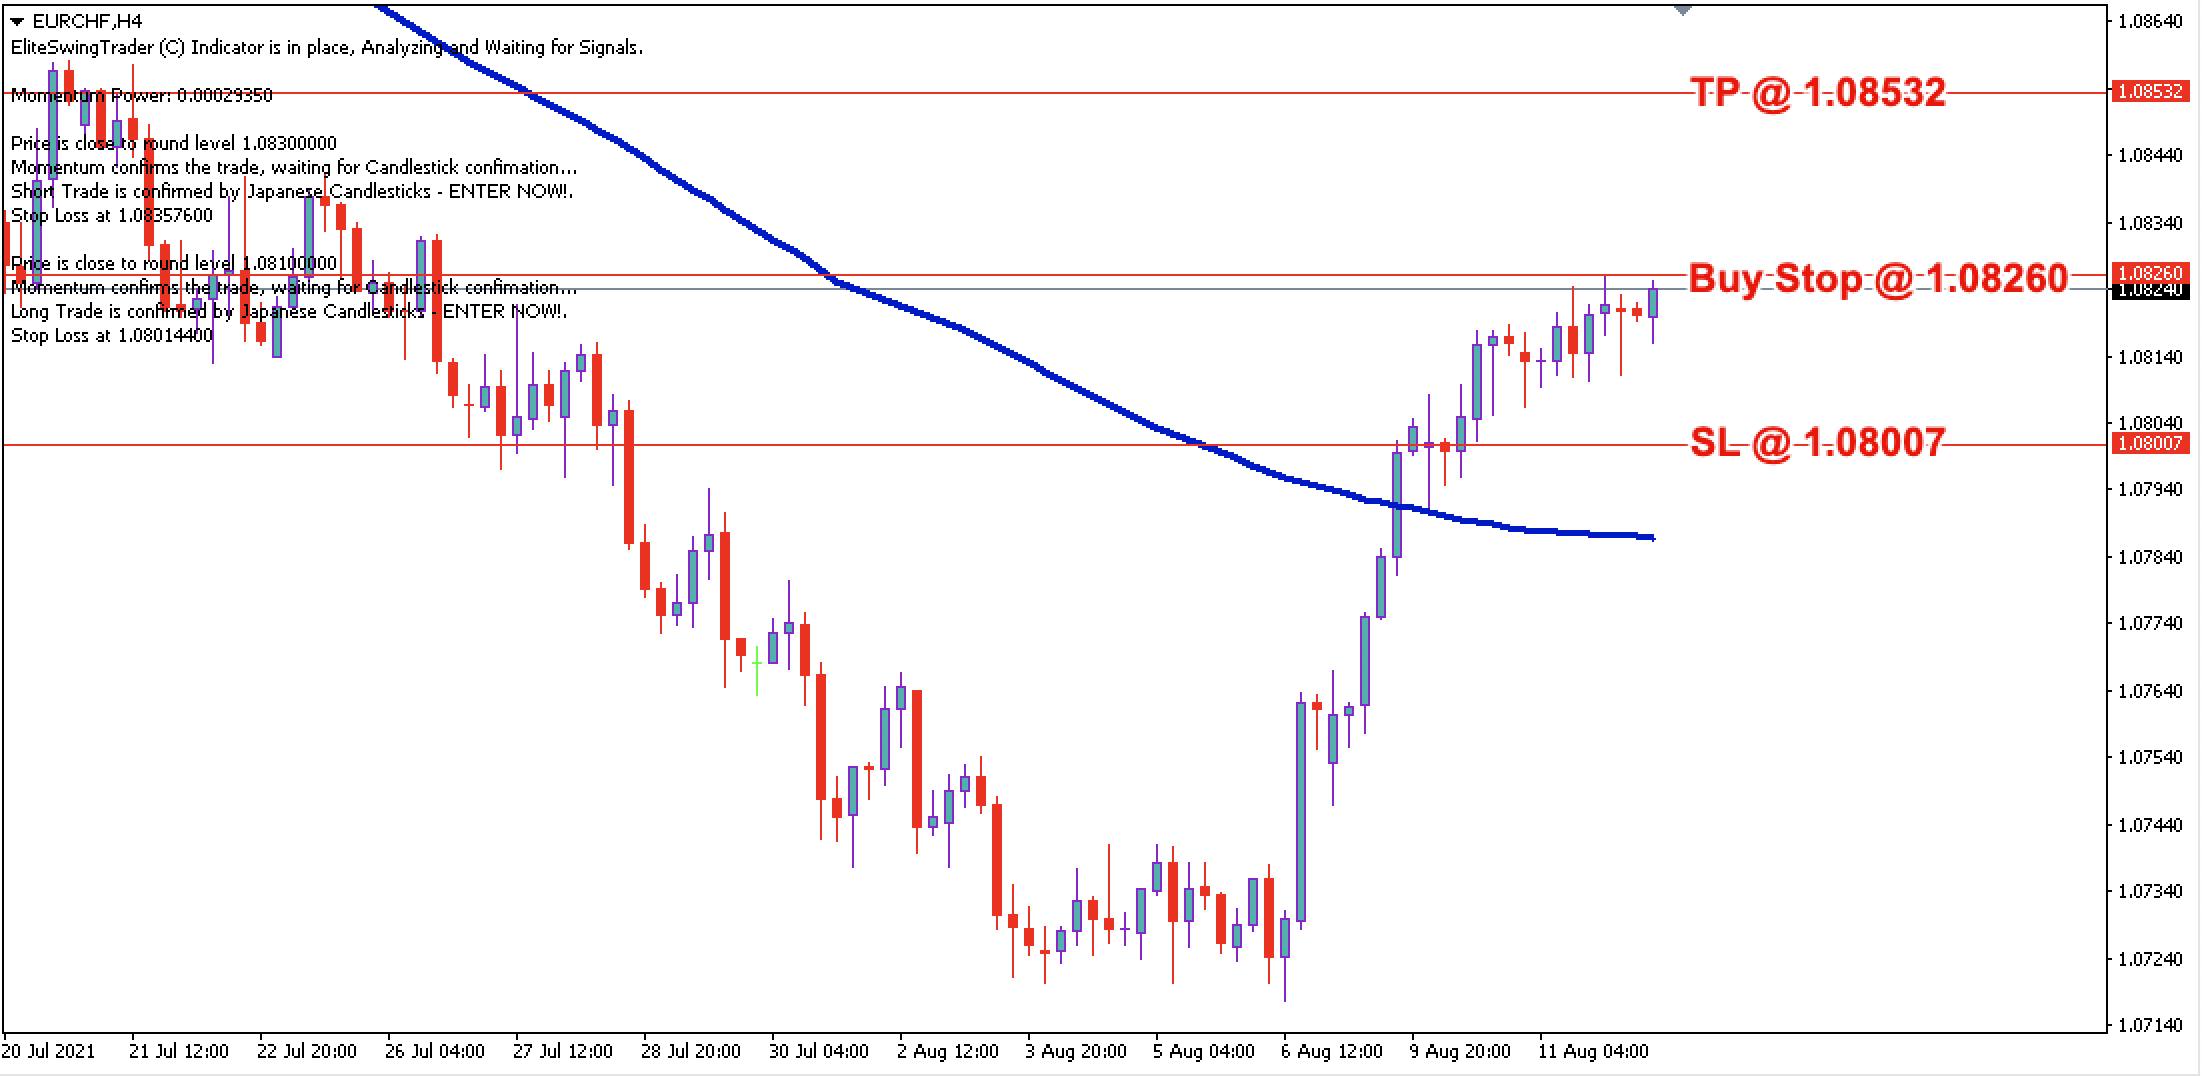 EUR/CHF Daily Price Forecast – 12th August 2021